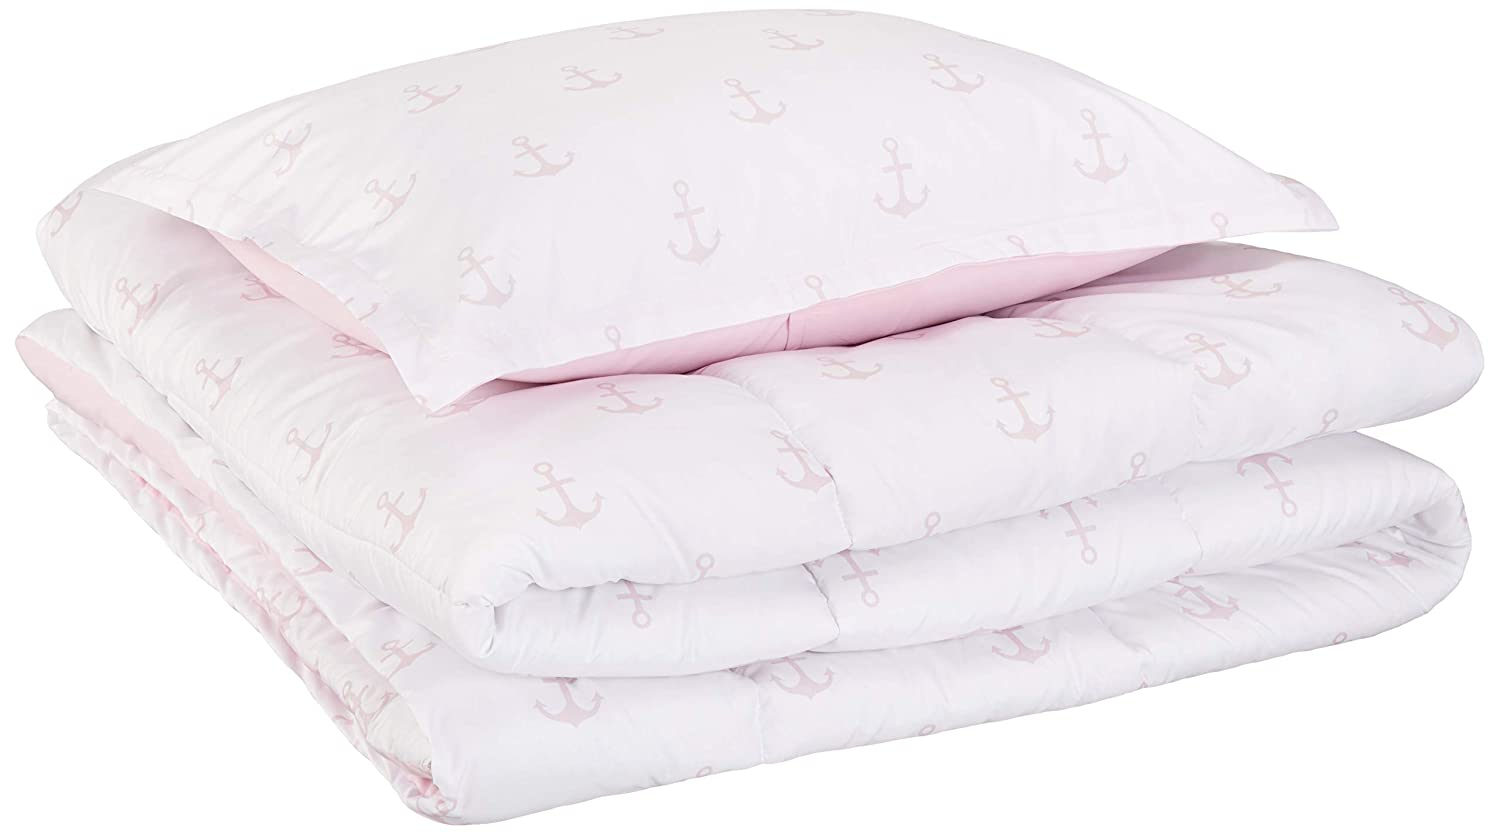 AmazonBasics Kid's Comforter Set - Soft, Easy-Wash Microfiber - Twin, Pink Anchors